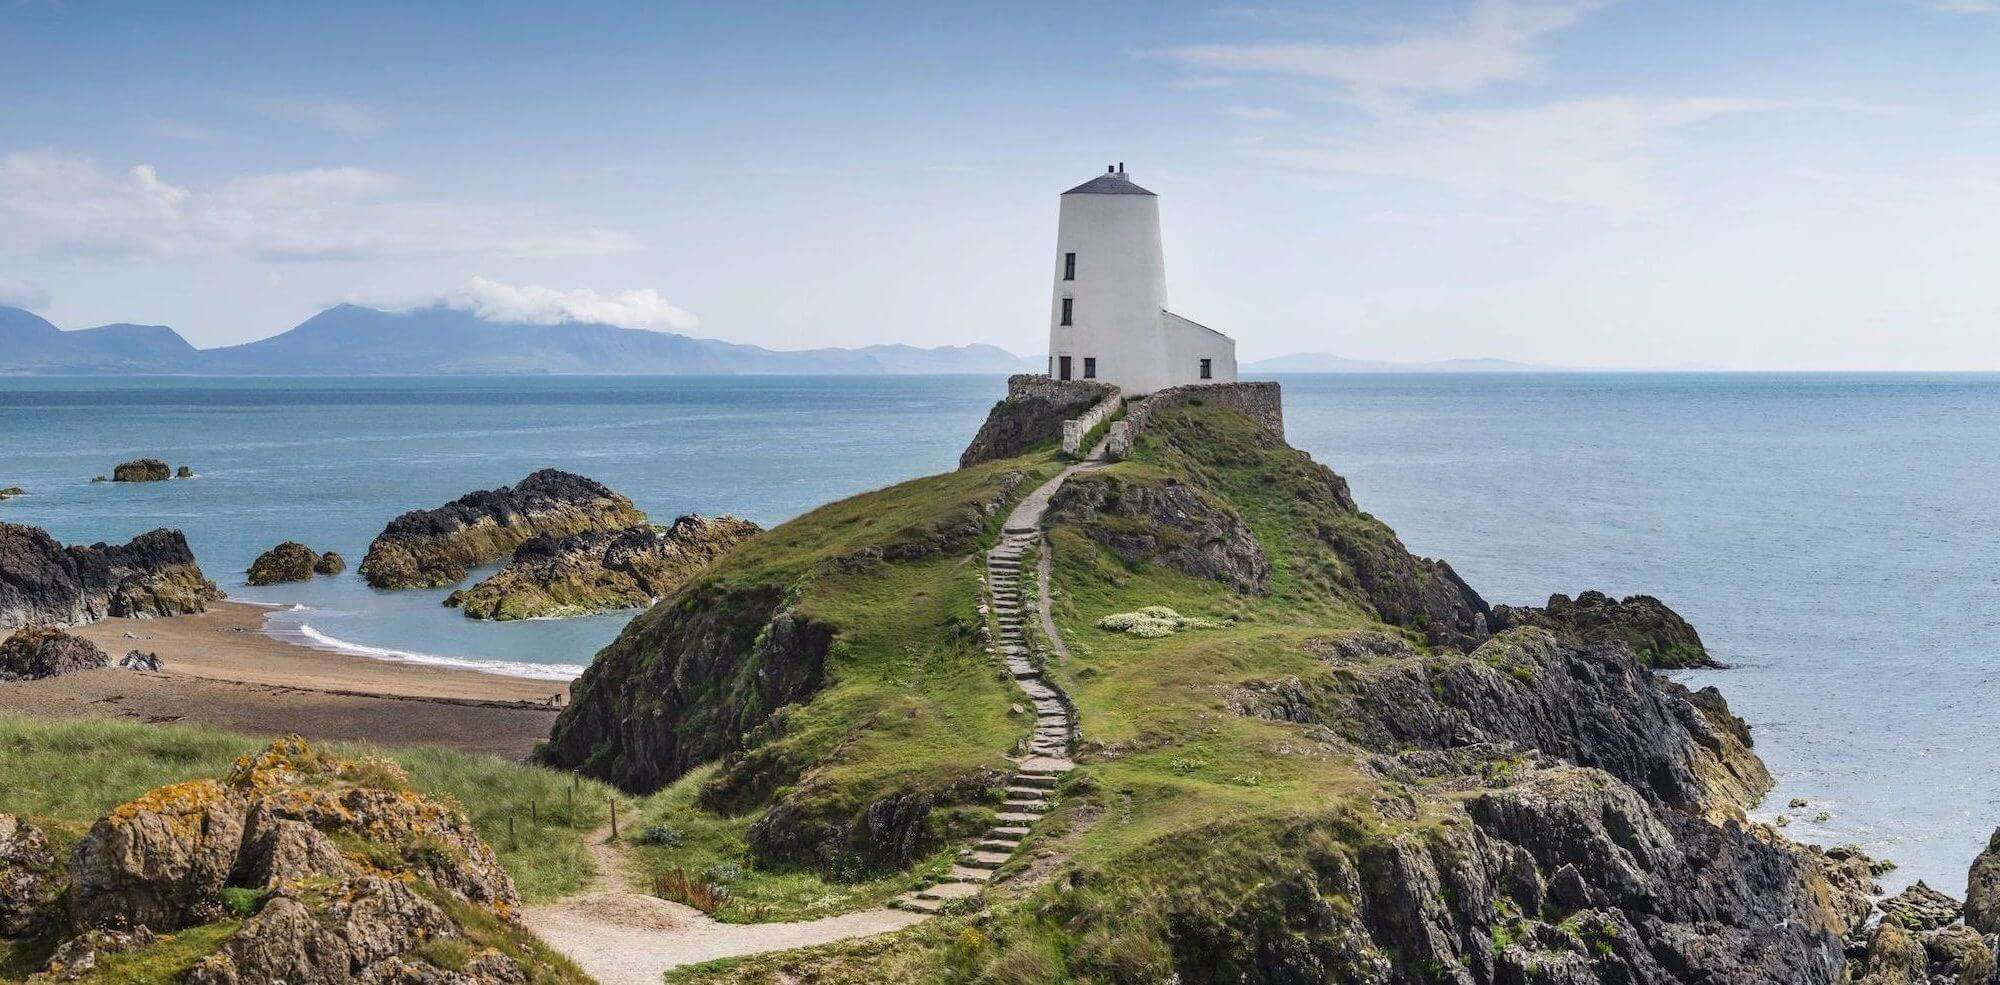 Walking path up to the Tŵr Mawr lighthouse on Llanddwyn Island Anglesey coast path